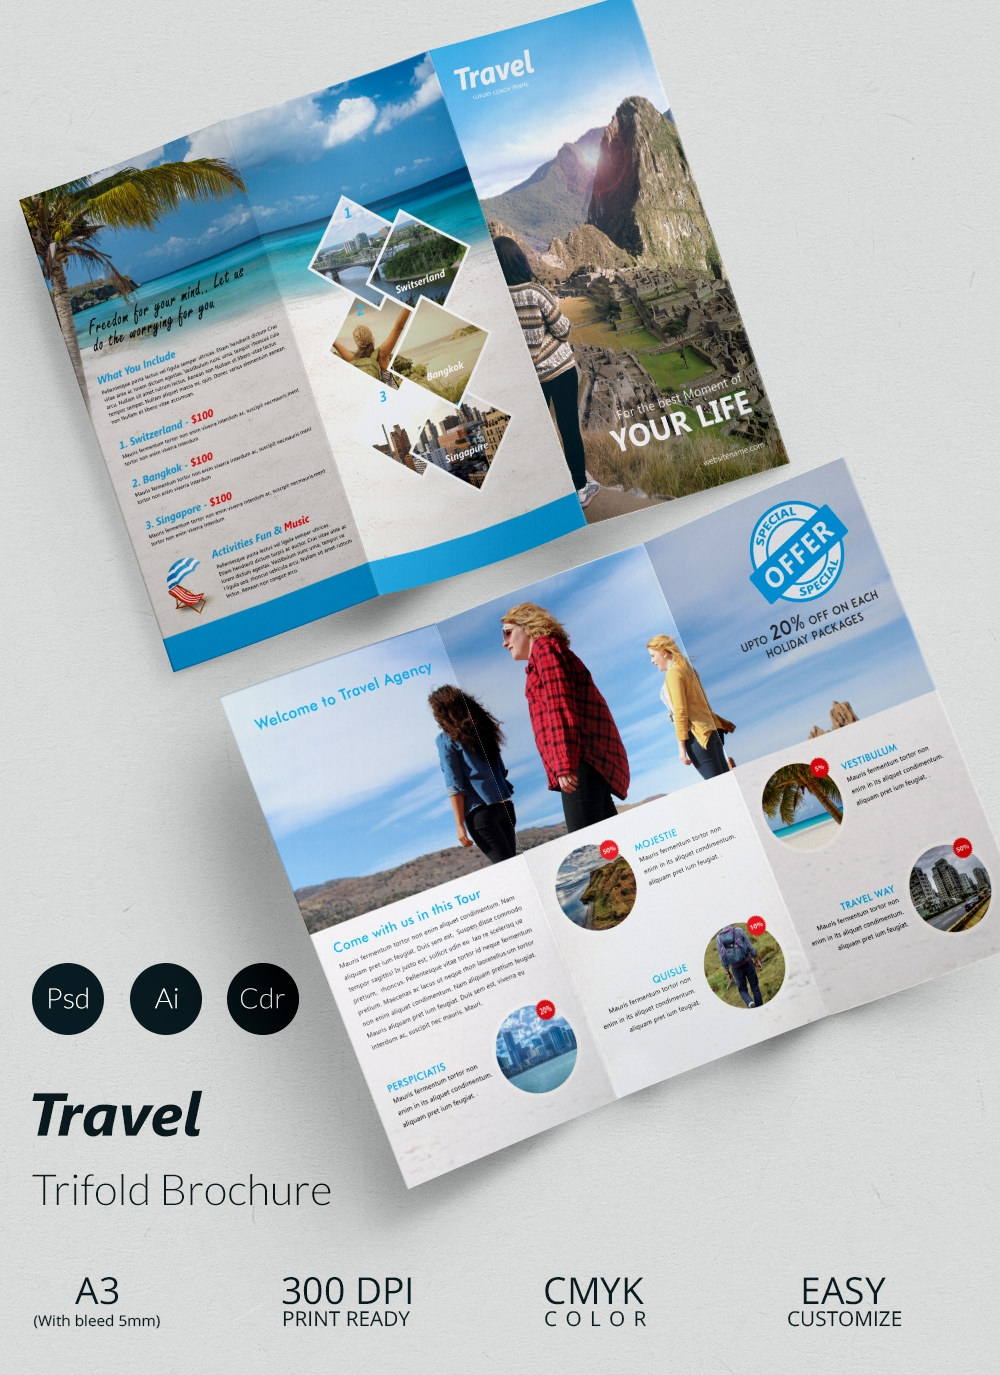 Travel brochures templates militaryalicious travel brochures templates saigontimesfo